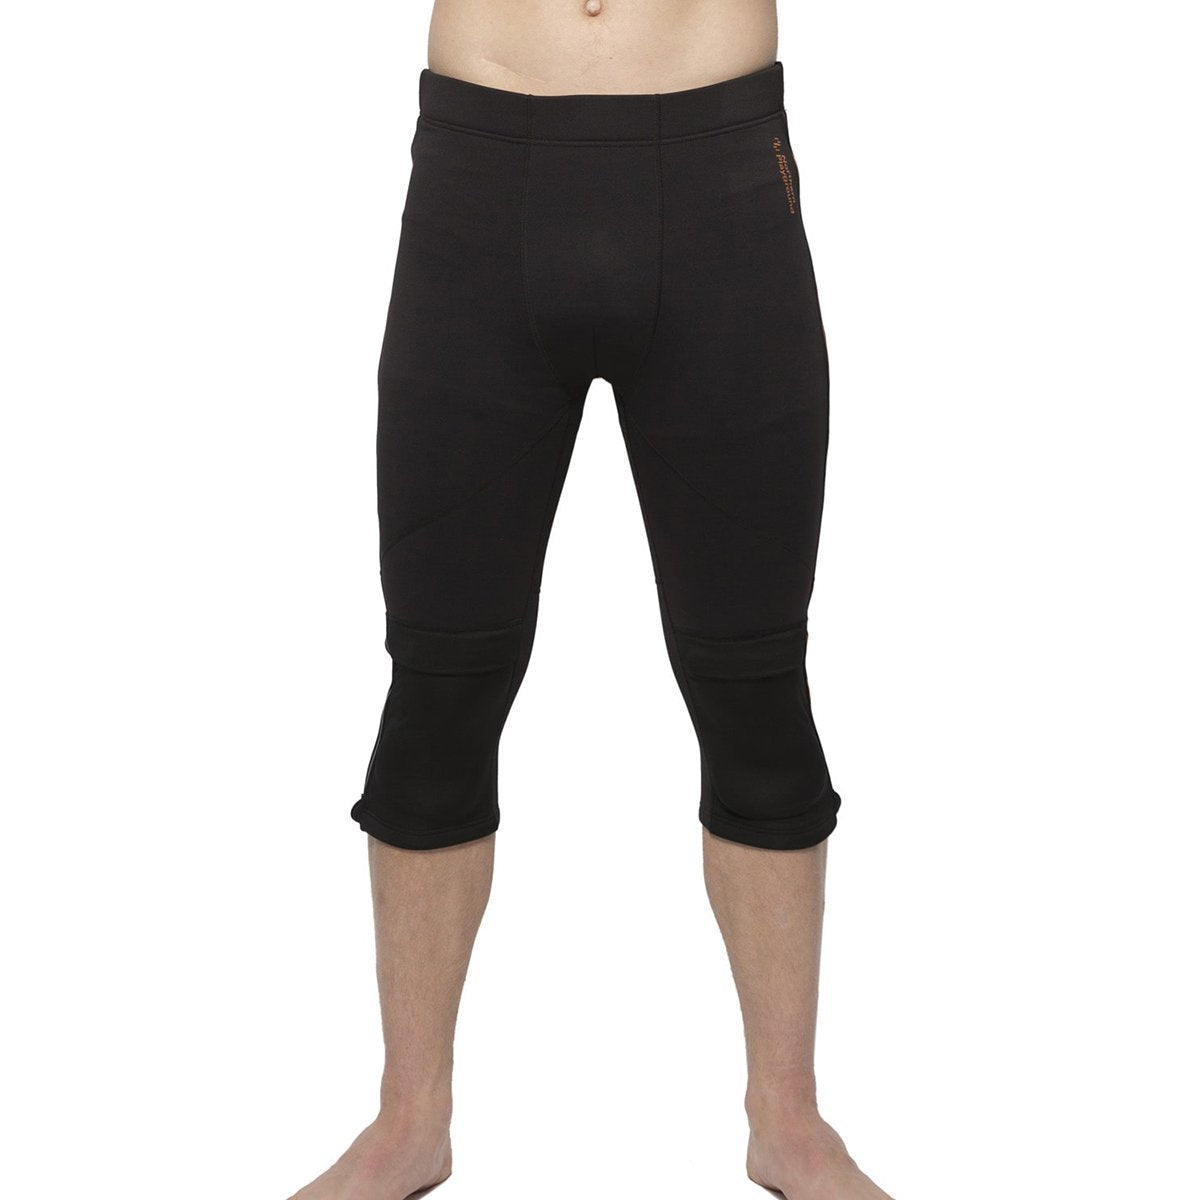 Northern Playground, Ziplongs Padded - 3/4 Length - Men's, Black, Mens Baselayer